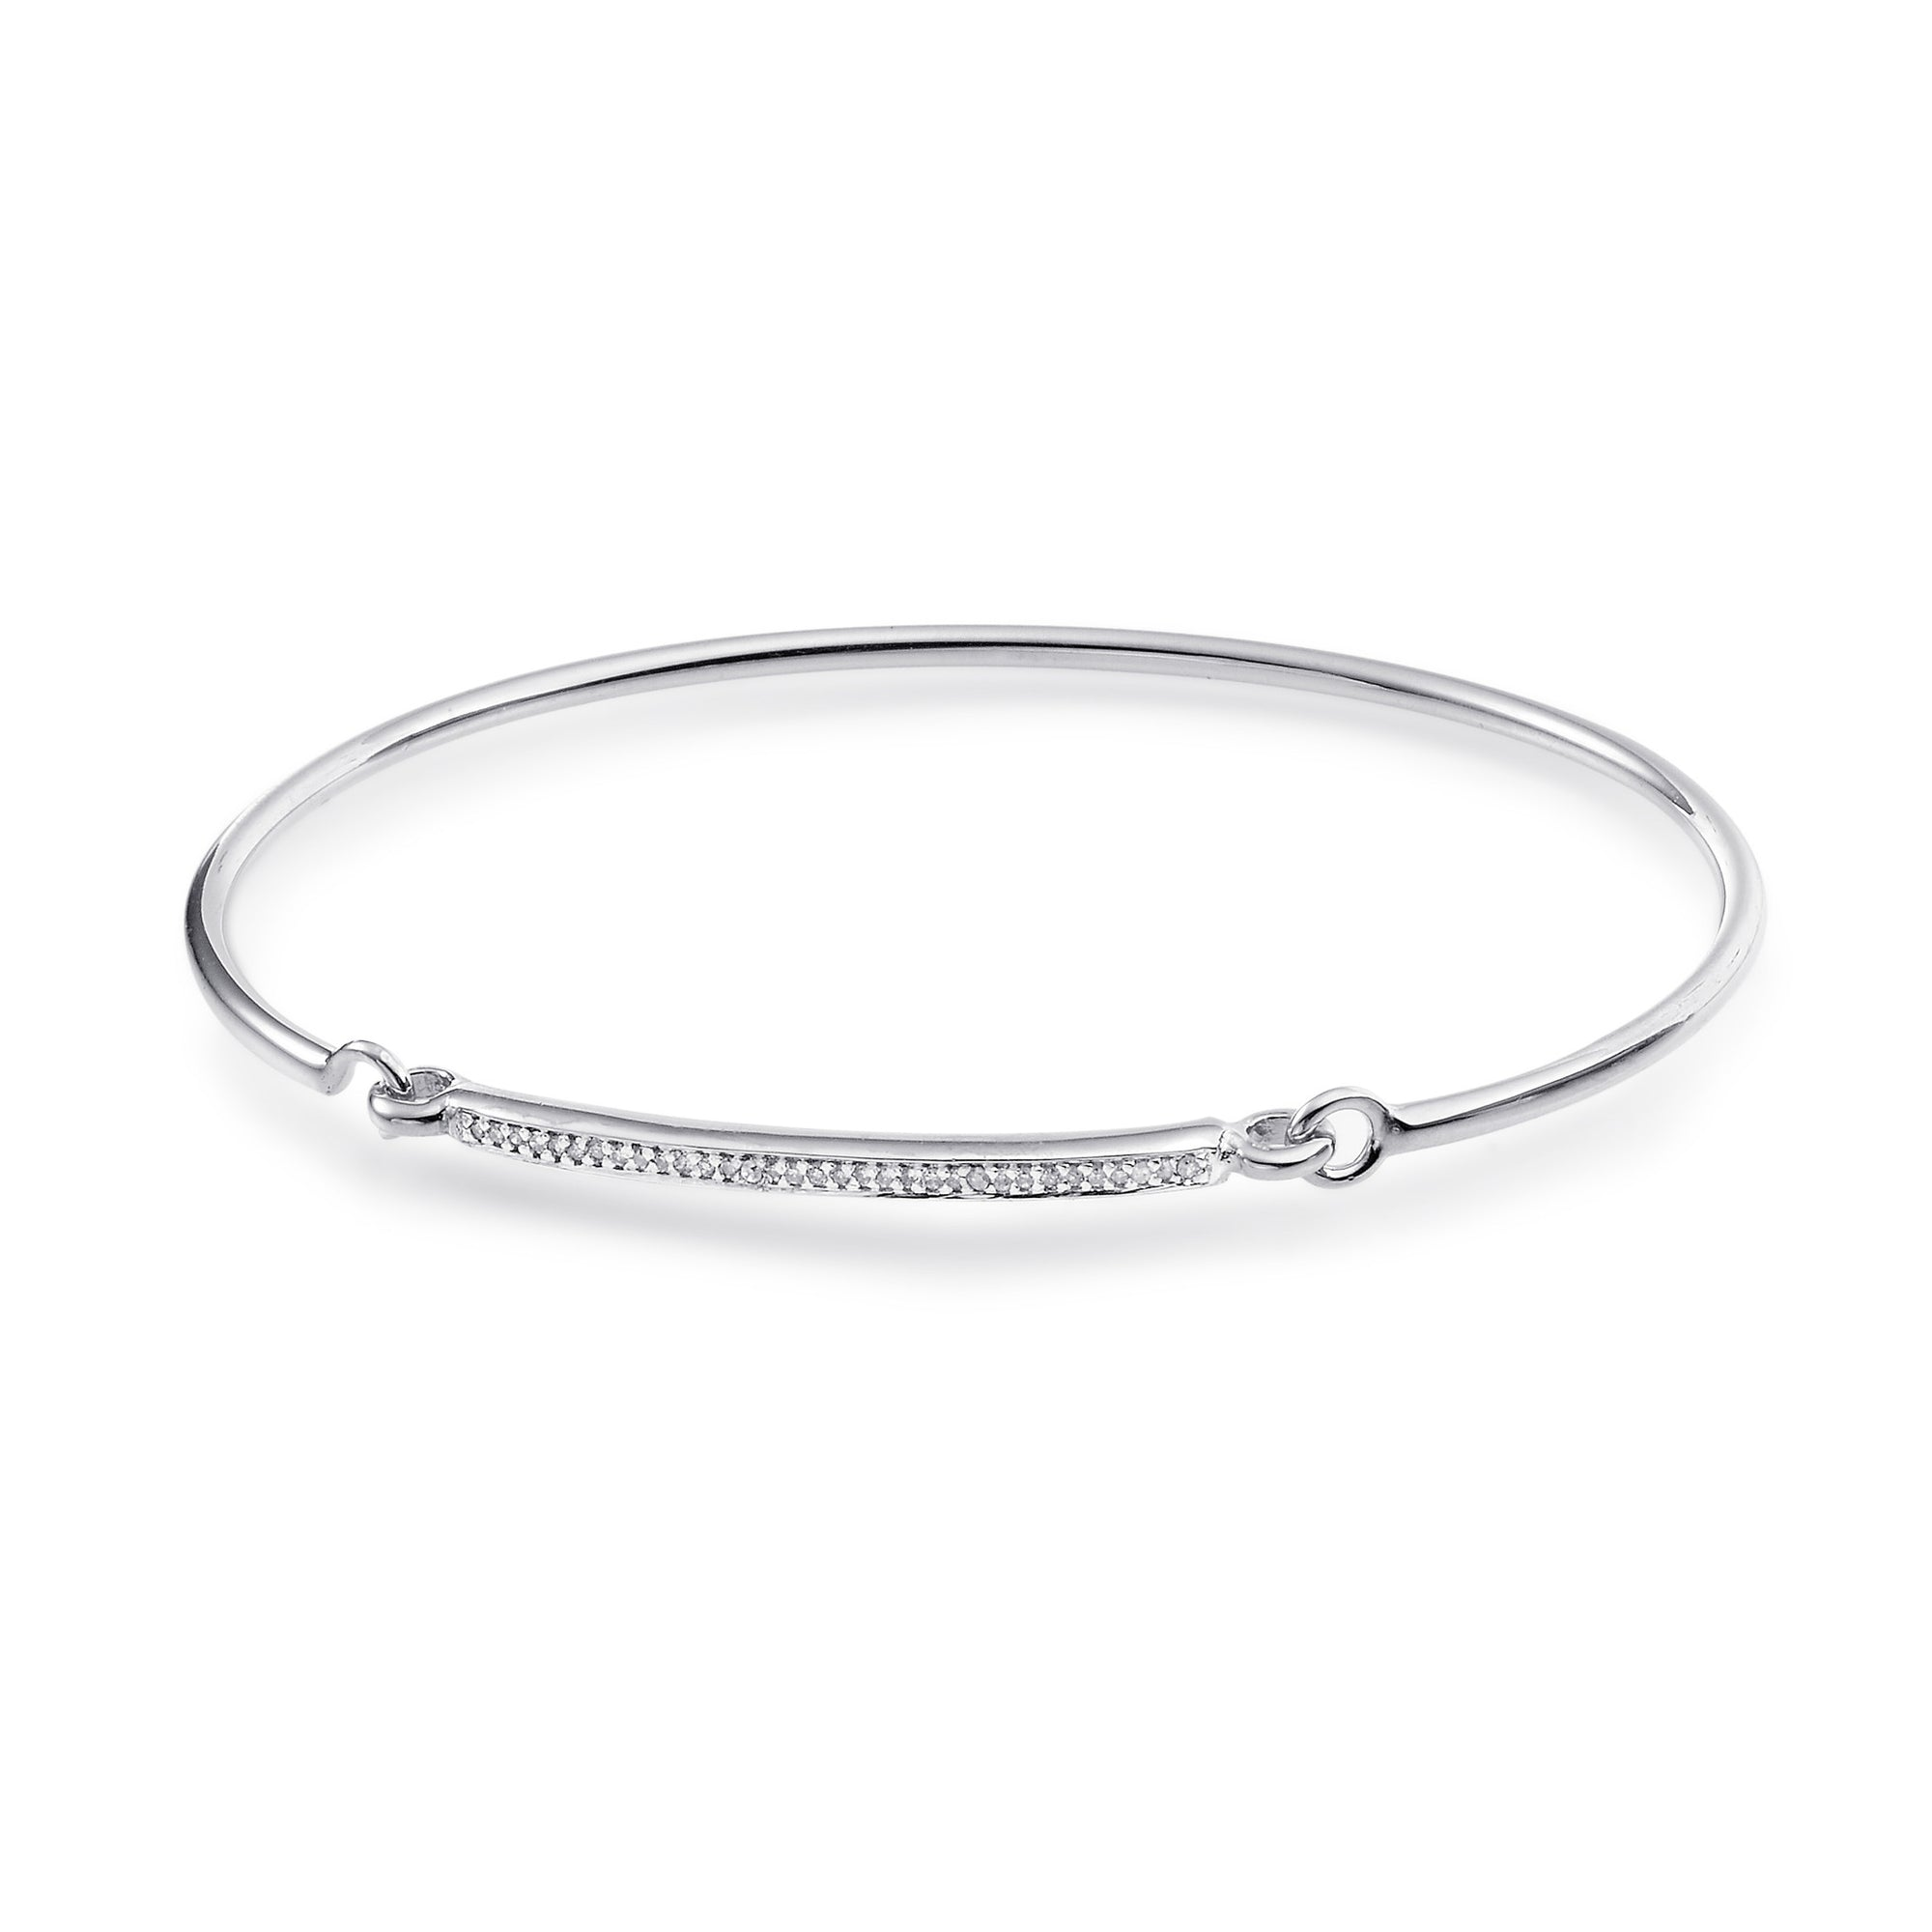 bangles cable yurman pin dy silver bracelet bangle david collection vintage diamond sterling